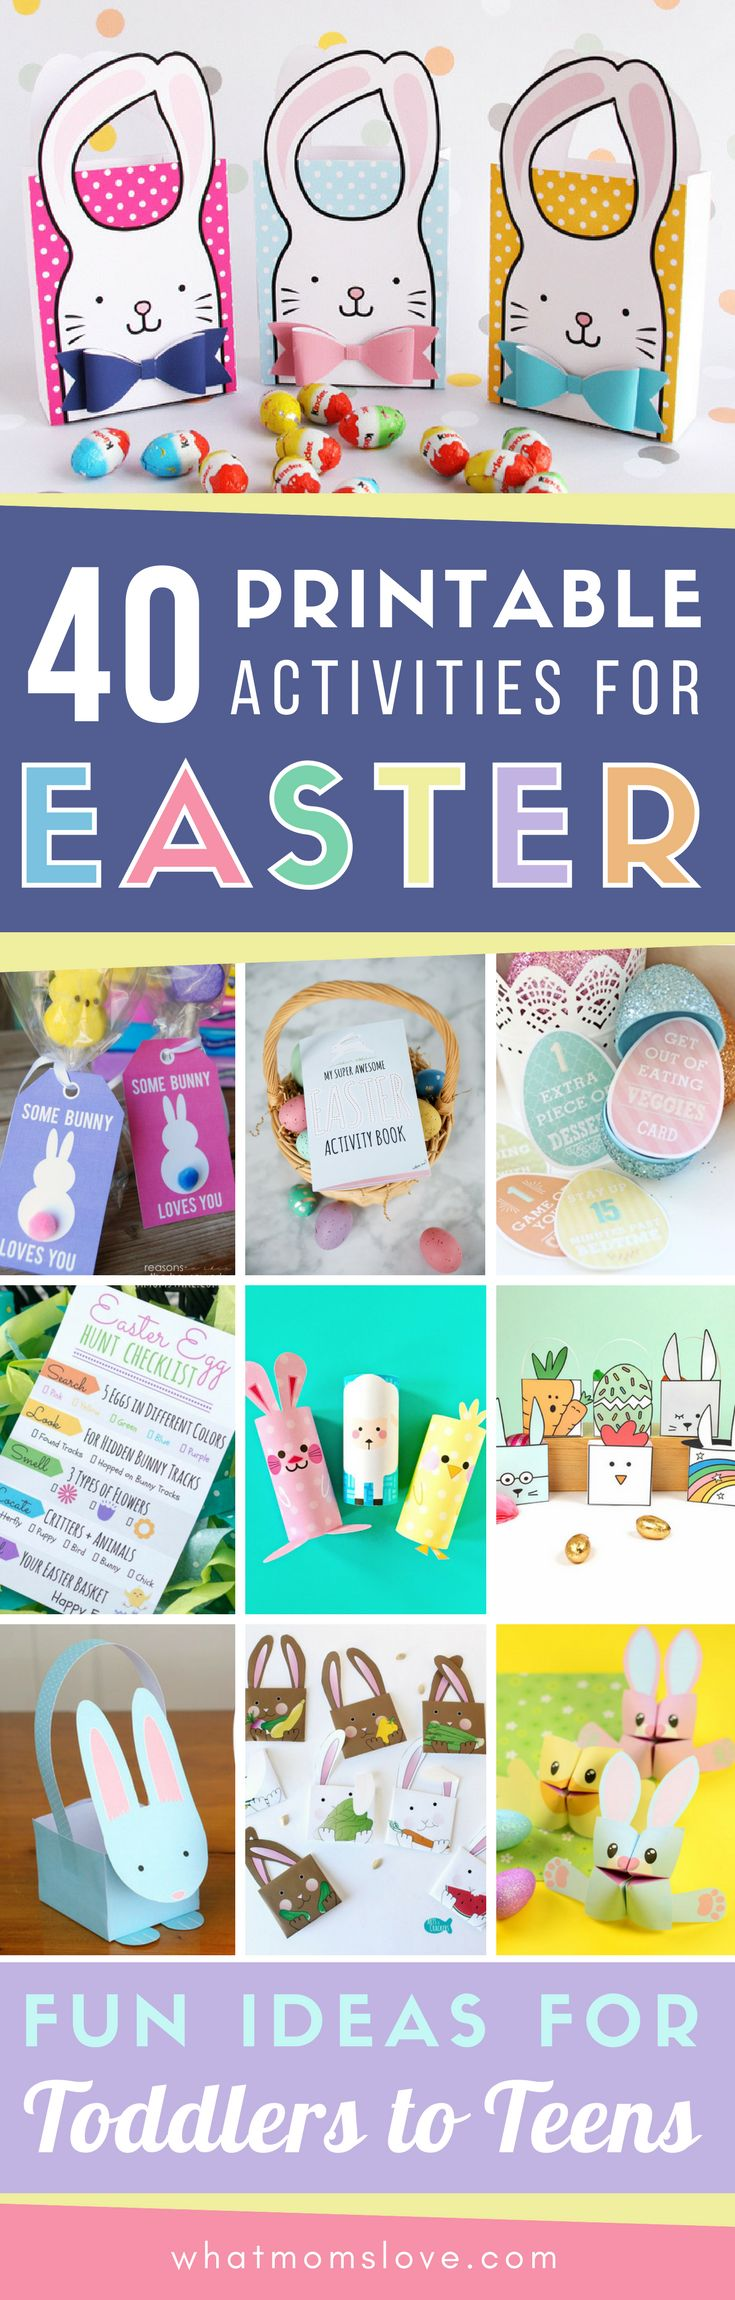 Simplify your Easter activities with these incredible printables full of fun and easy crafts, activities, scavenger hunts, gift tags, coloring pages, egg stuffers and more! These printable DIY Easter activities can be used at home or in the classroom for kids of all ages.